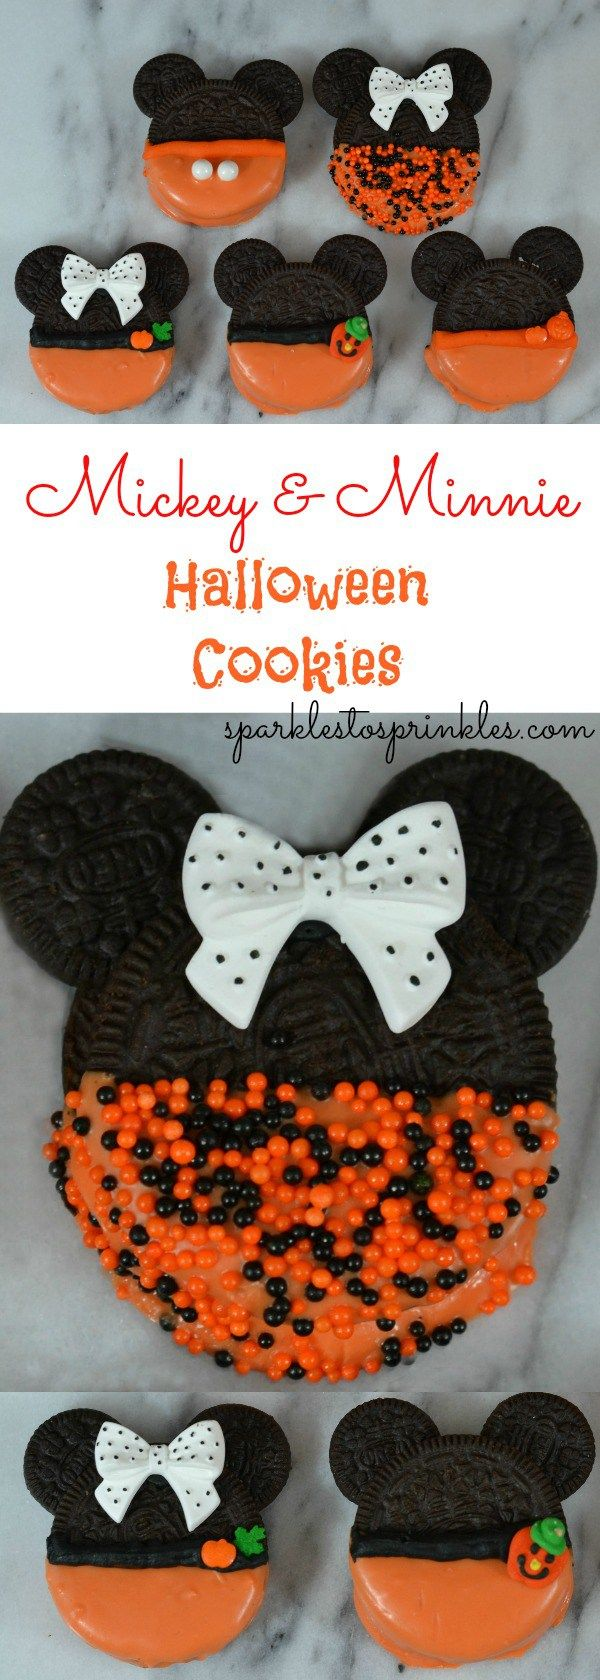 If you are like me, you have seen and have fallen in love with Living Locurto's Mickey & Minnie Mouse Christmas Cookies.  They have to be the most adorable Mickey & Minnie creation ever! You can clearly see that my Mickey & Minnie Halloween Cookies are a spin off of those adorable cookies. Halloween is …